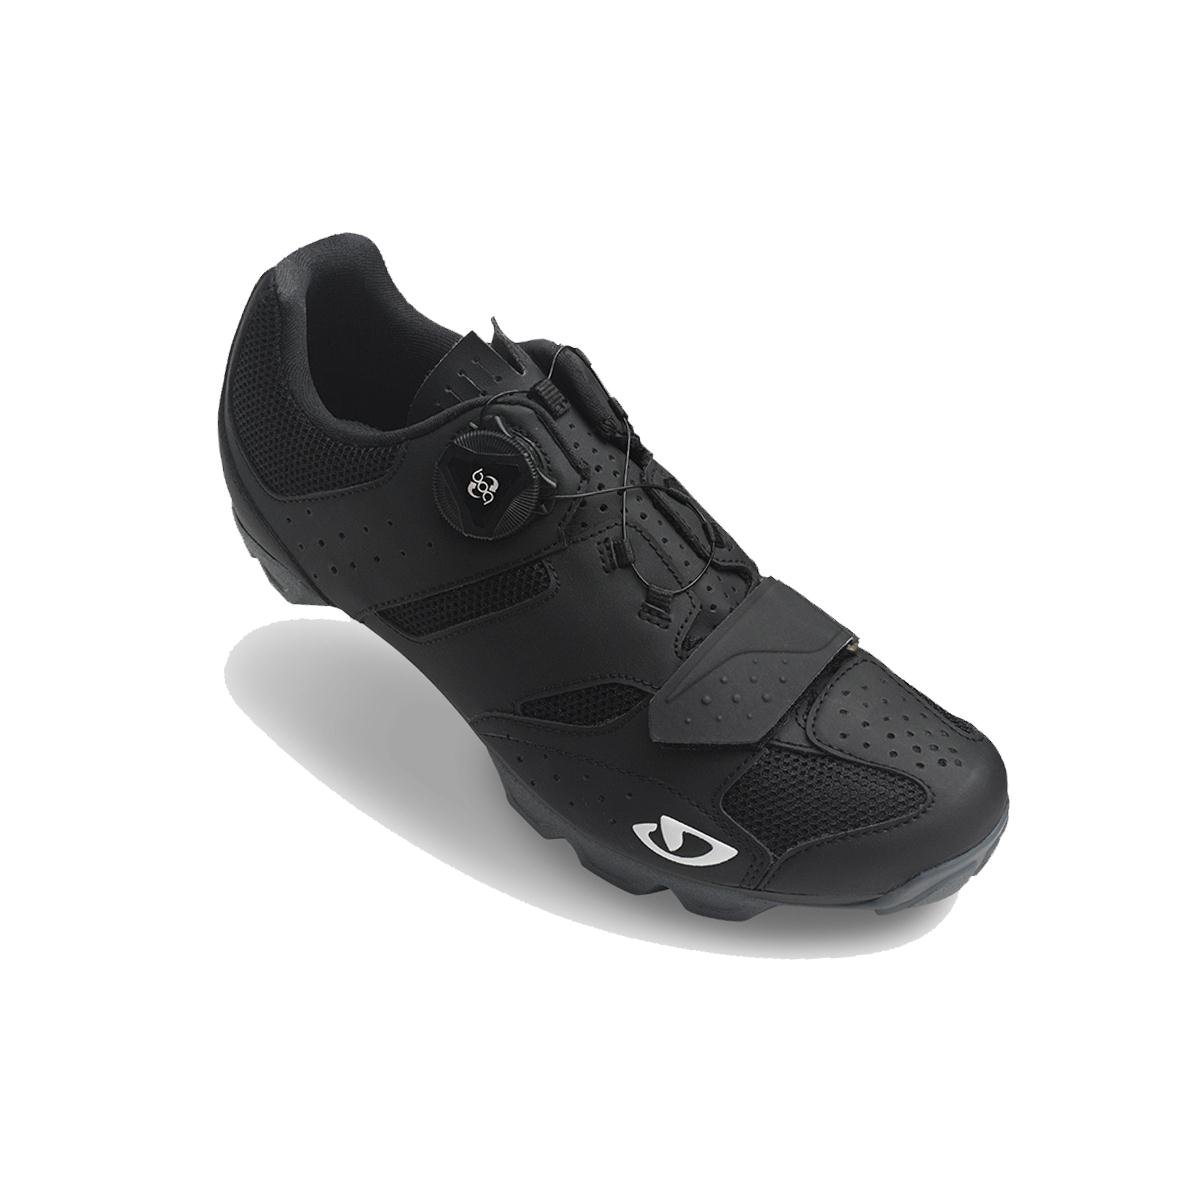 Giro Cylinder Cycling Shoes - Men's B06XWBD4FZ 39|Black